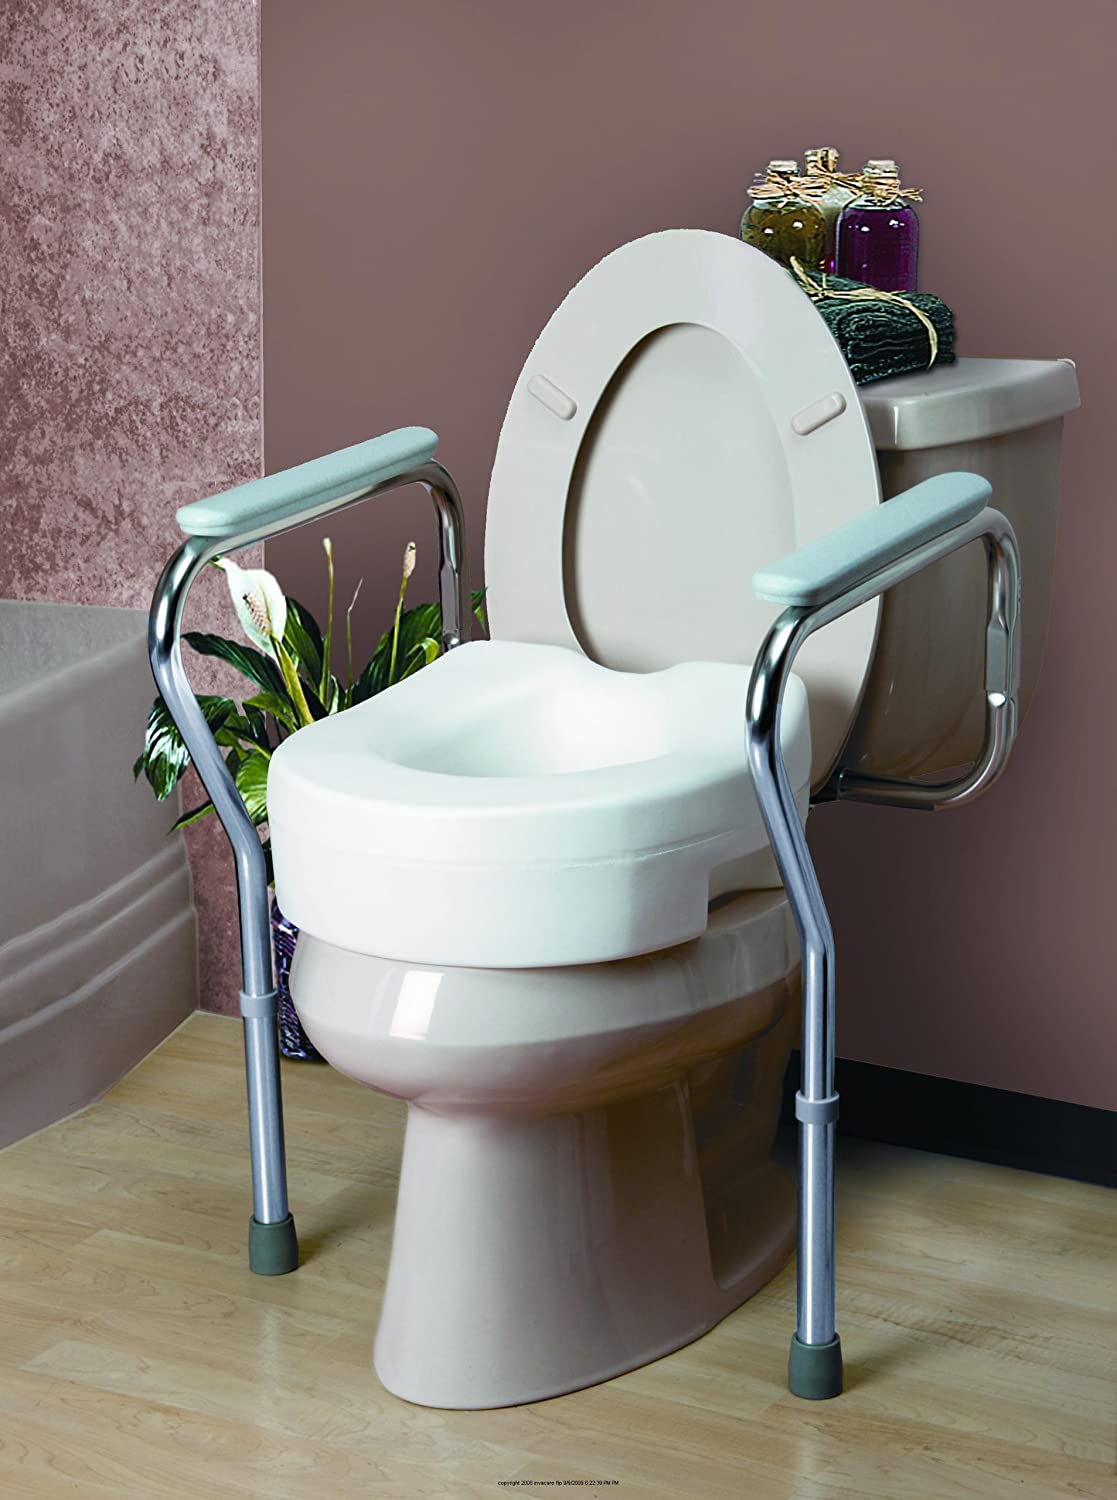 Miraculous Amazon Com Invacare Adjustable Toilet Safety Frame Ib Pabps2019 Chair Design Images Pabps2019Com